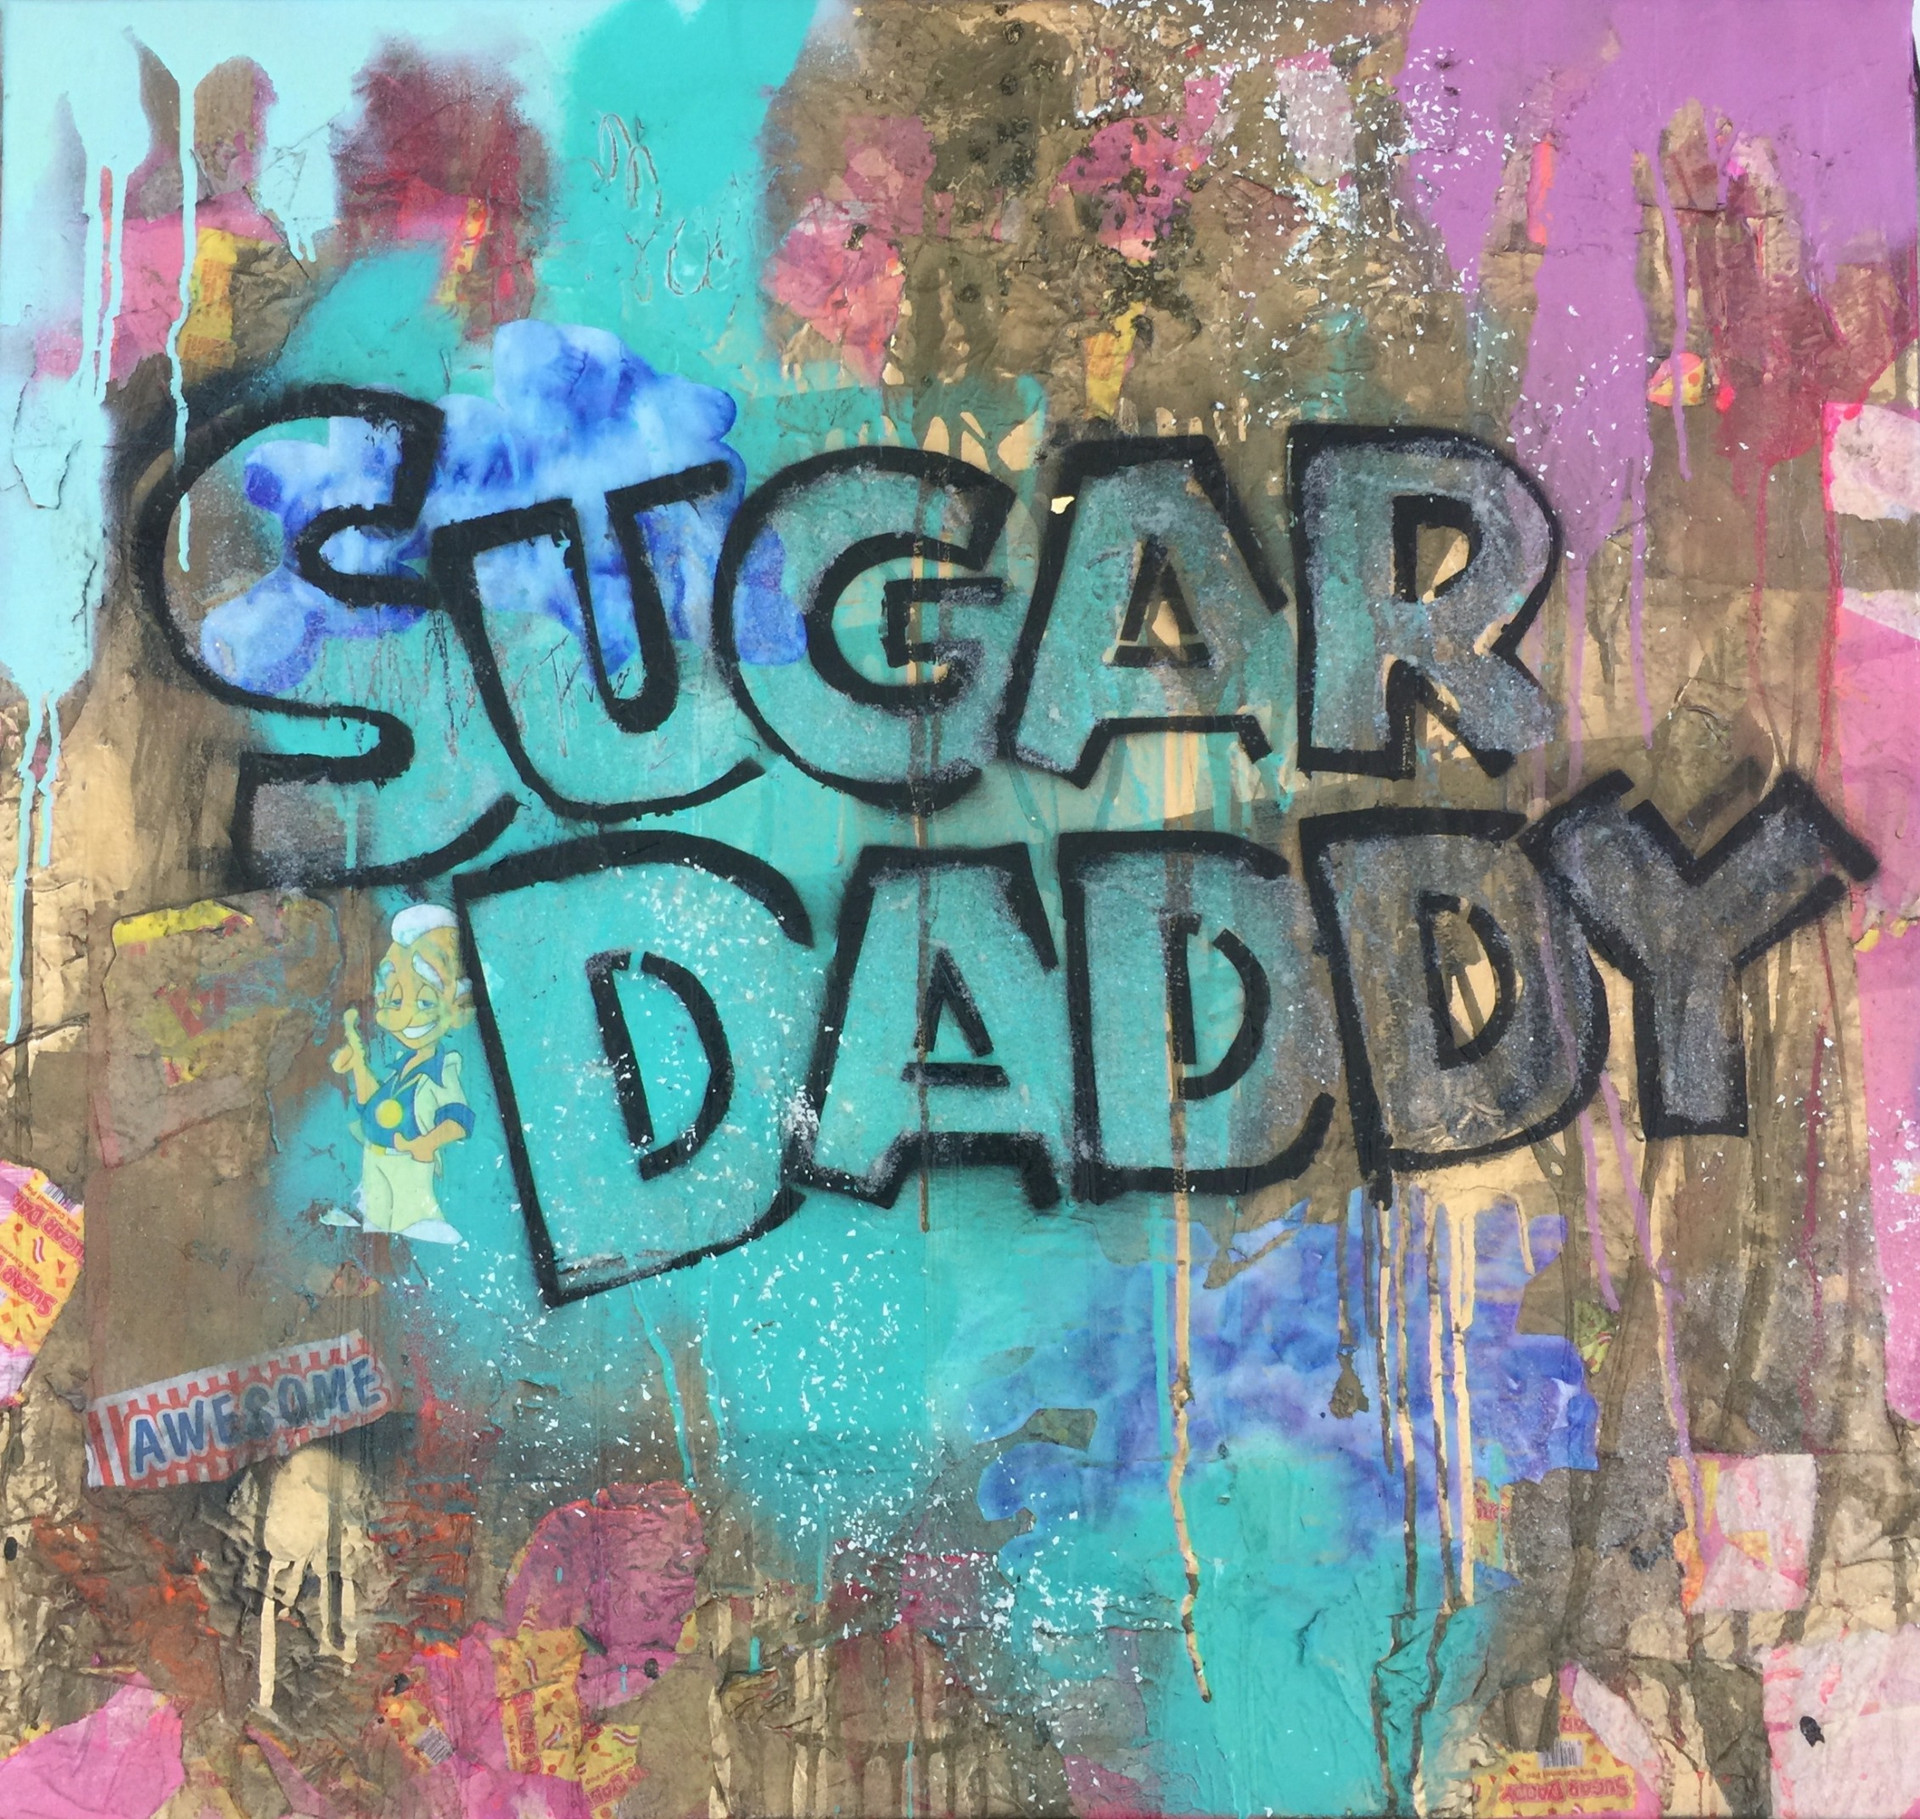 sugar%20daddy_edited.jpg